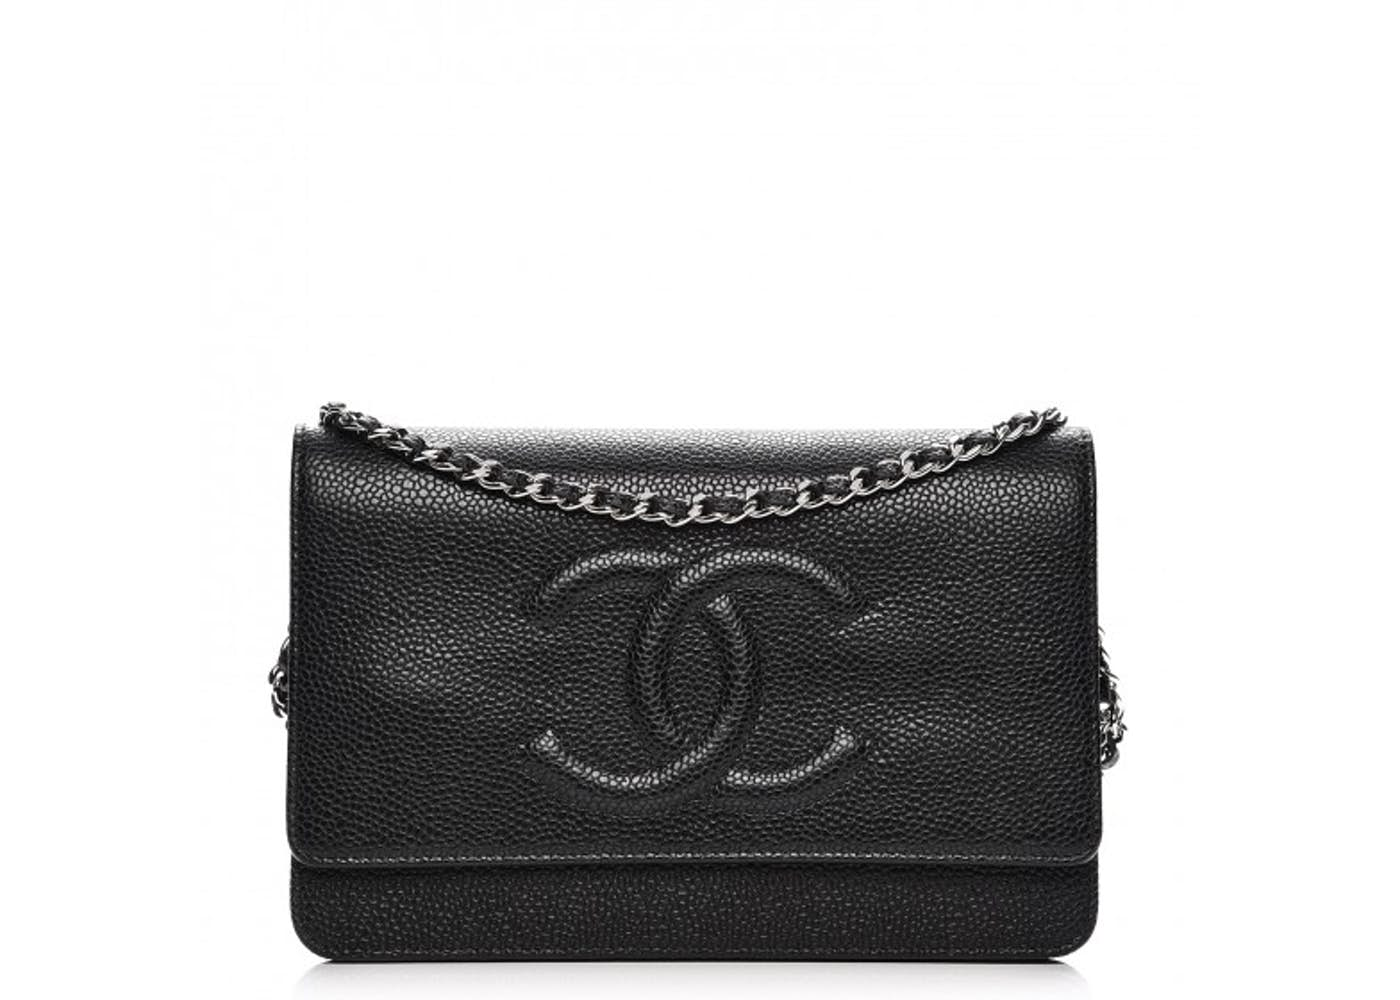 30a01361b217 Chanel Timeless Wallet On Chain Price | Stanford Center for ...